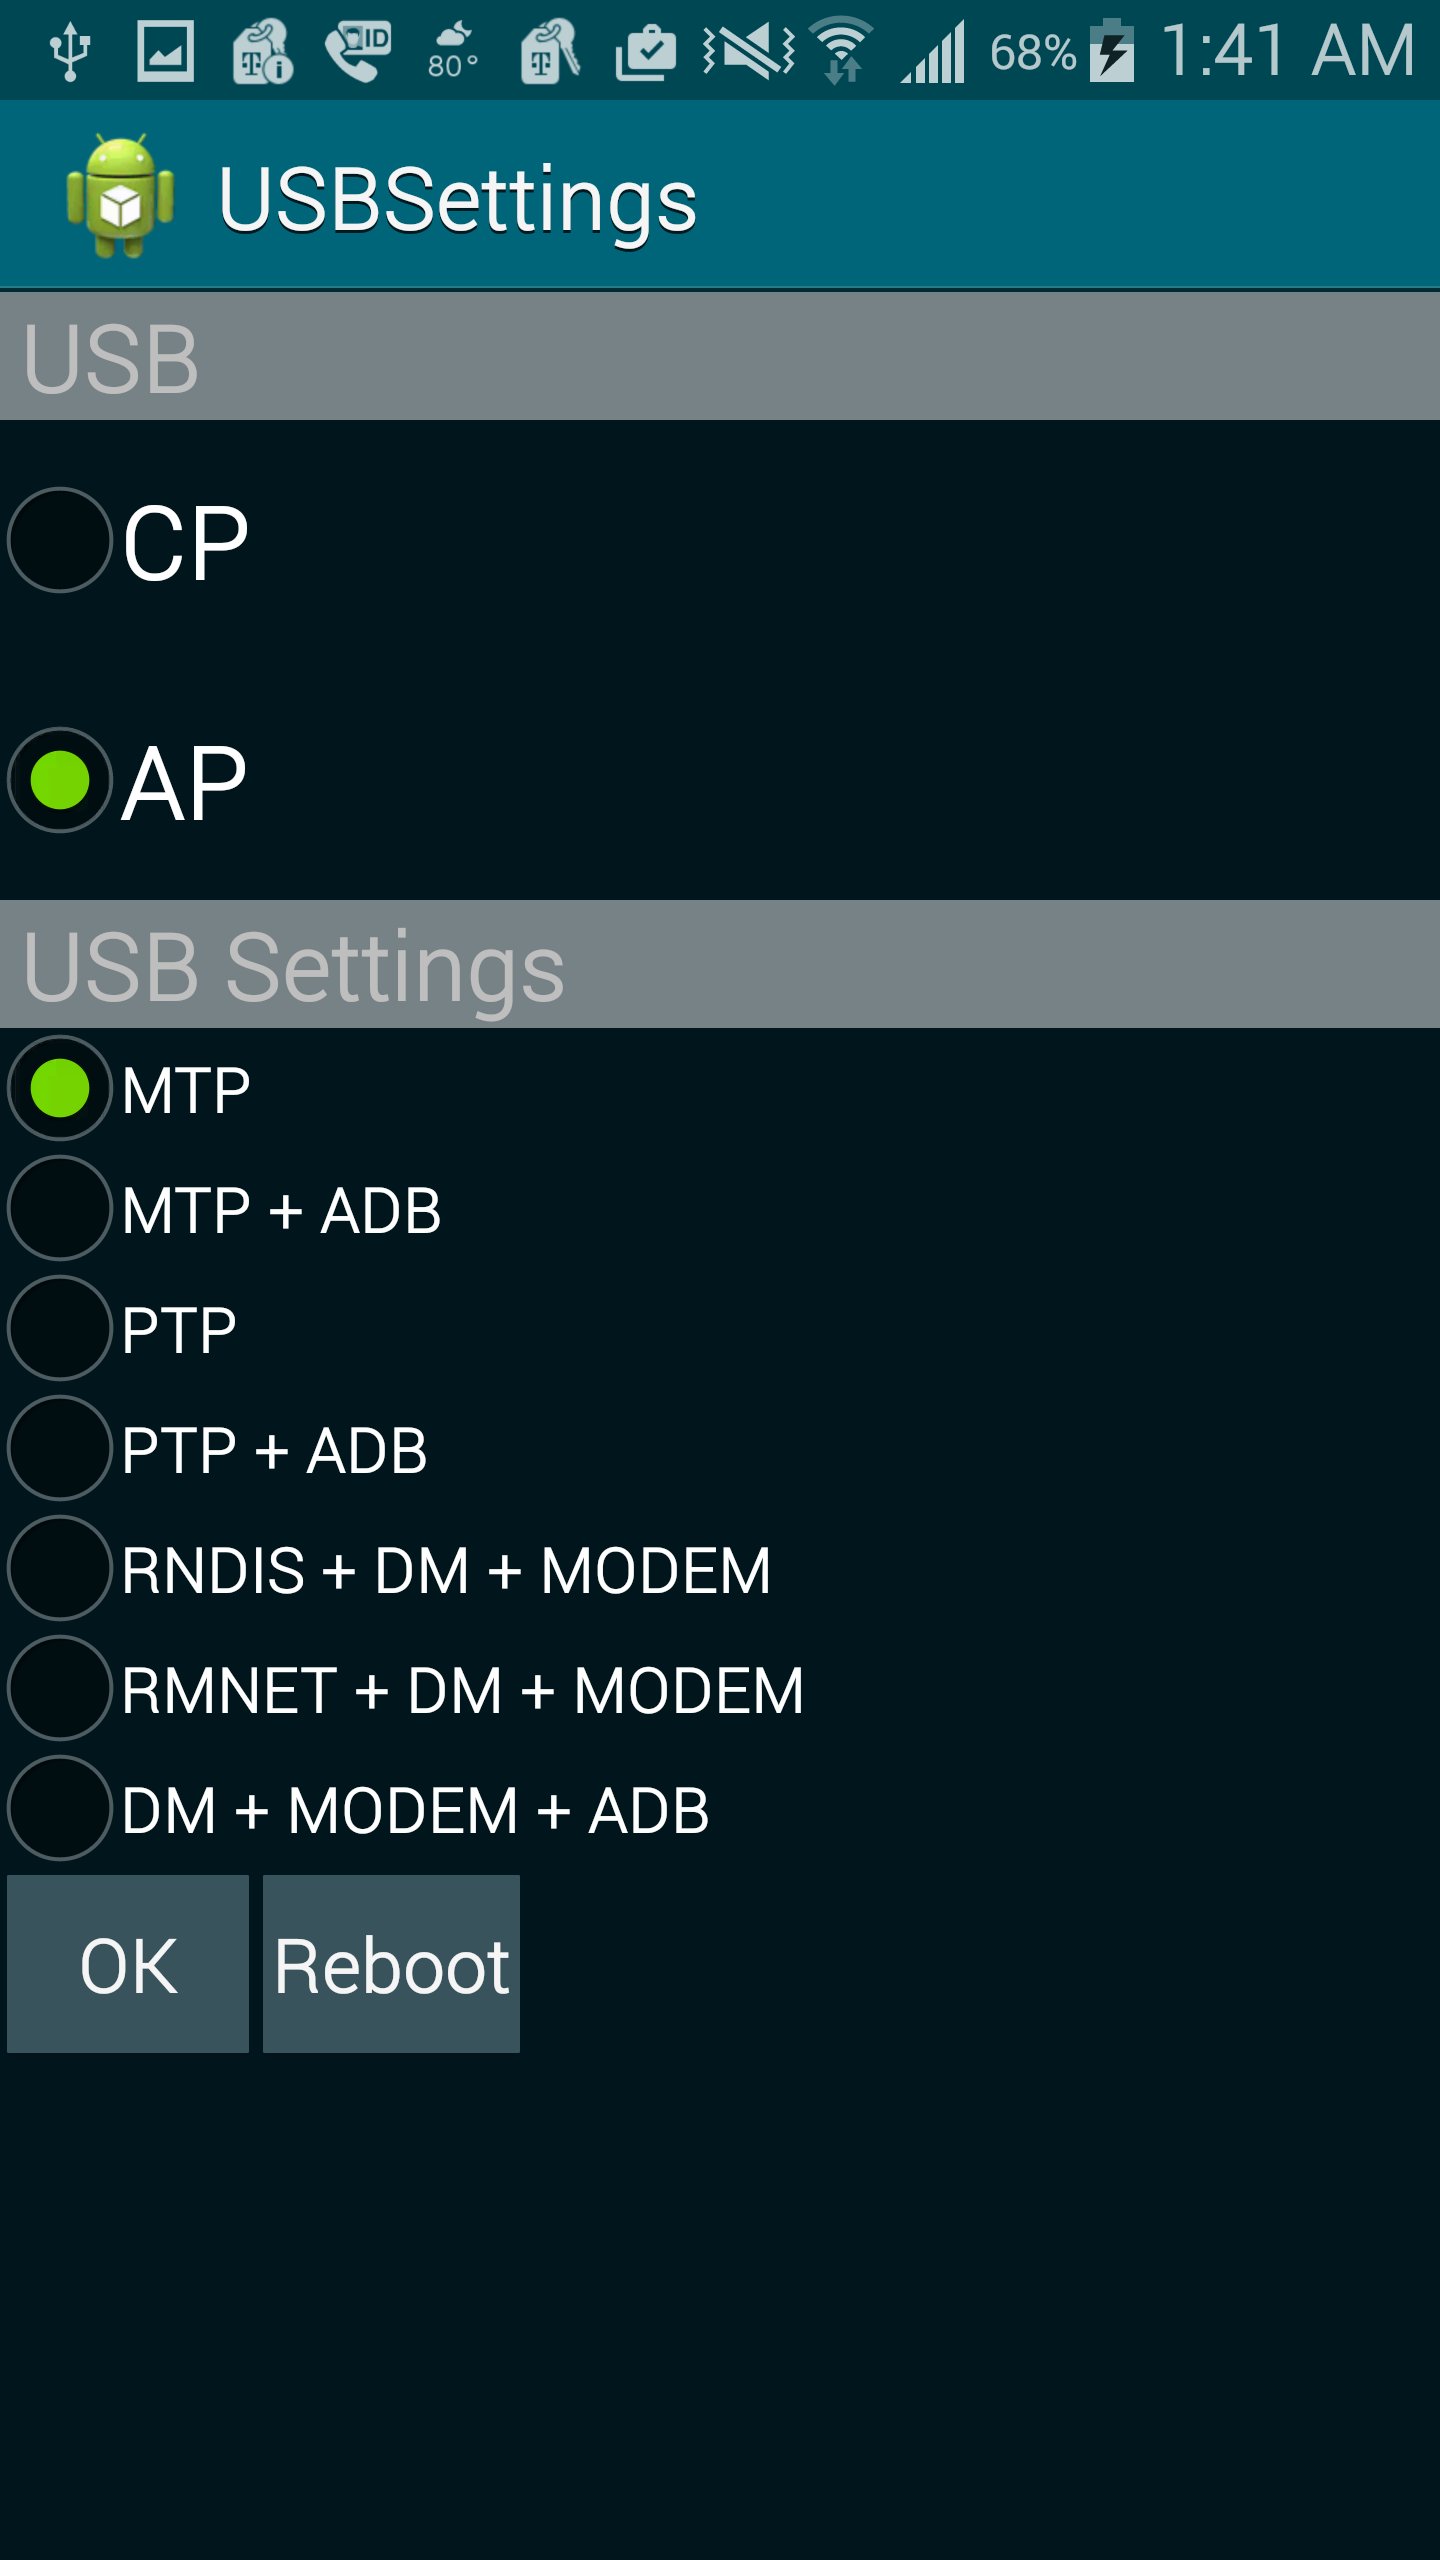 No USB MTP/PTP menu? Just dial *#0808# to enable USB Storage